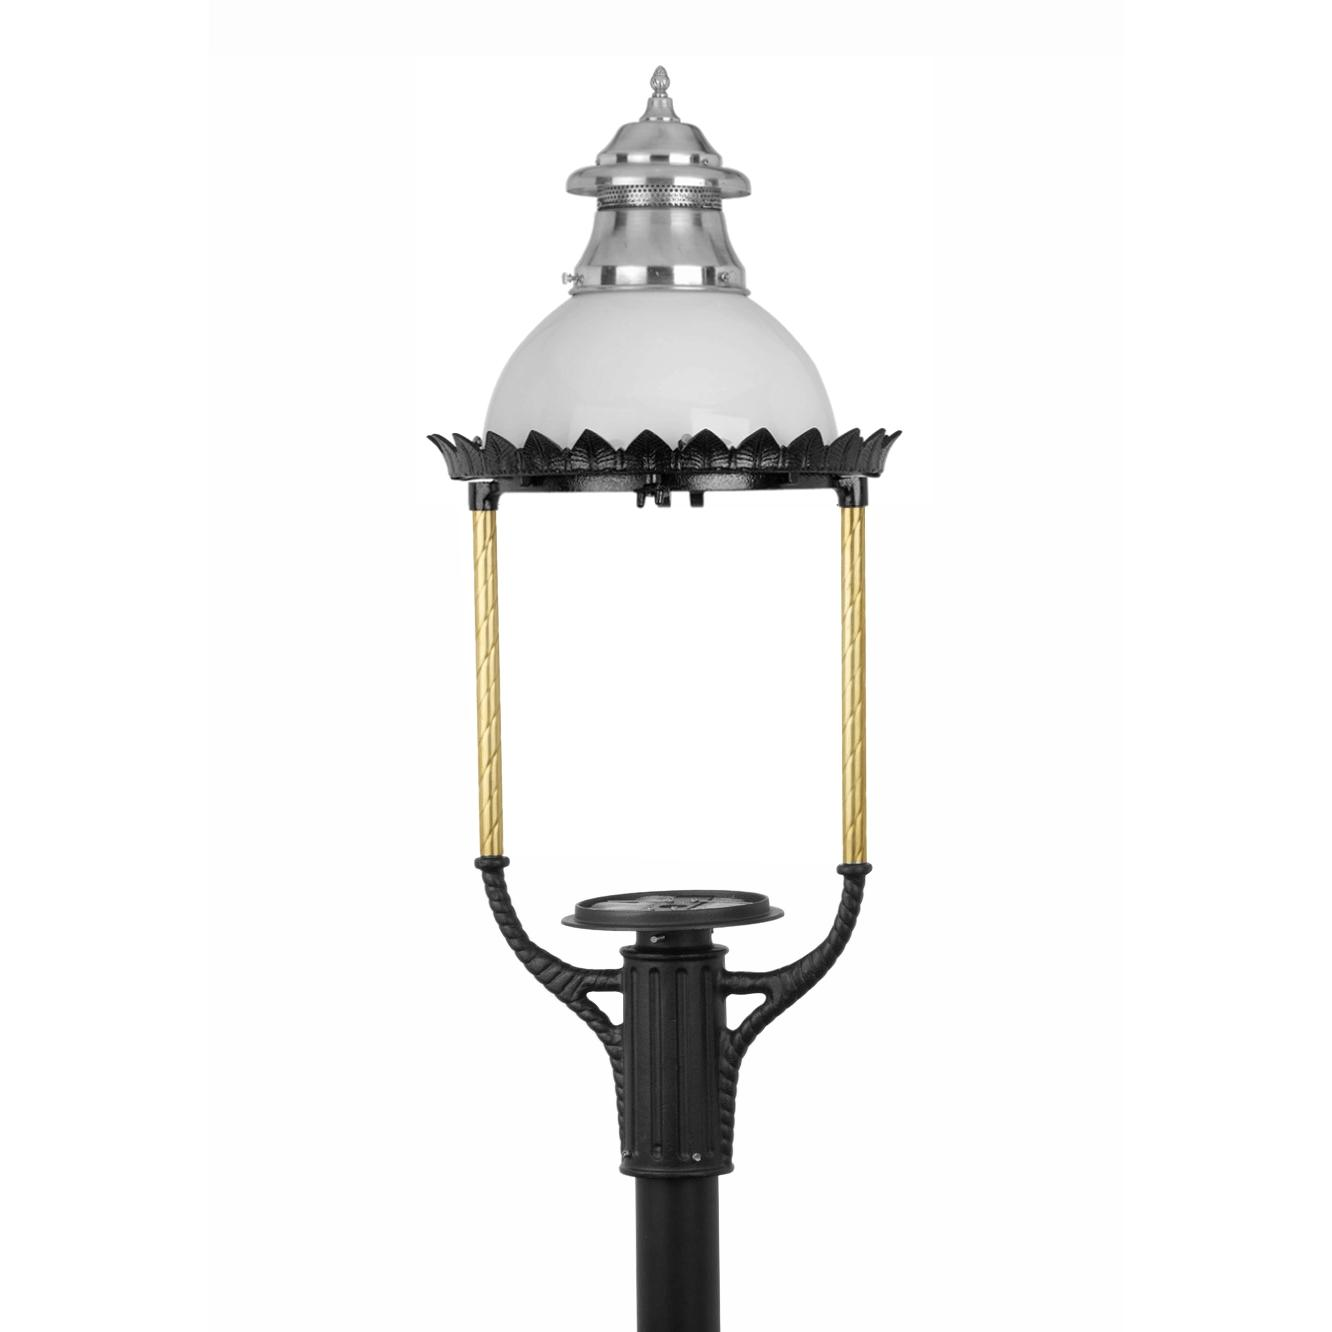 American Gas Lamp Works Gl36 Cast Aluminum Manual Ignition Natural Gas Light With Open Flame Burner For Post Mount